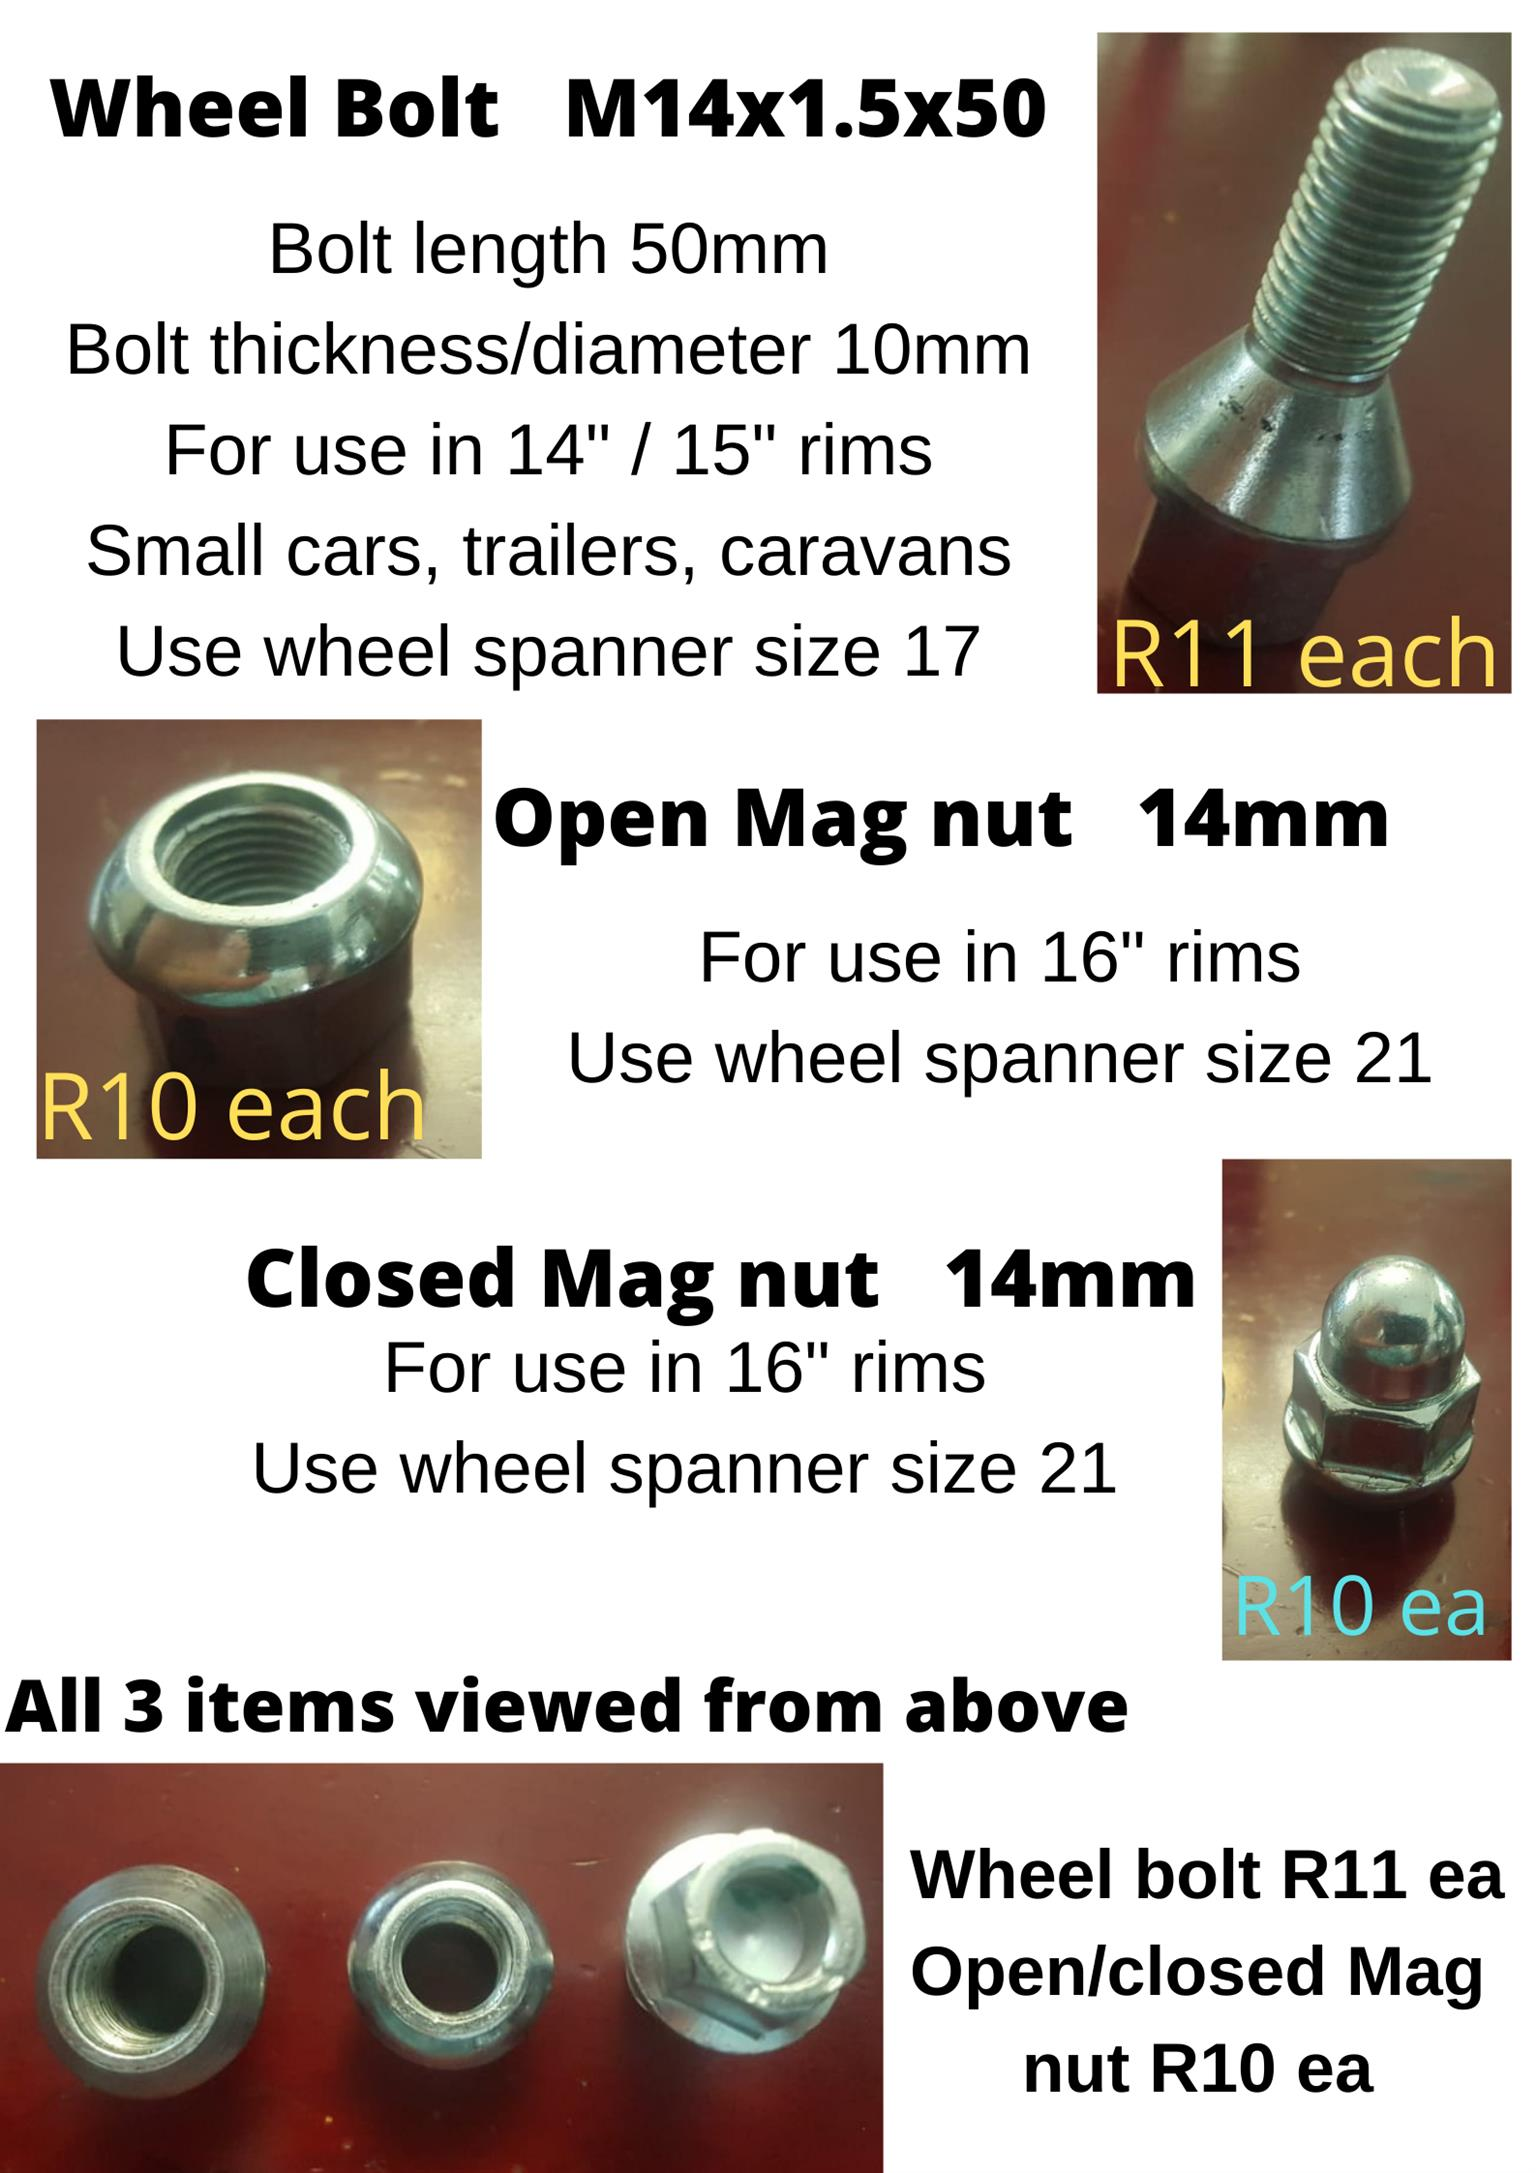 Wheel bolts & open and closed mag nuts